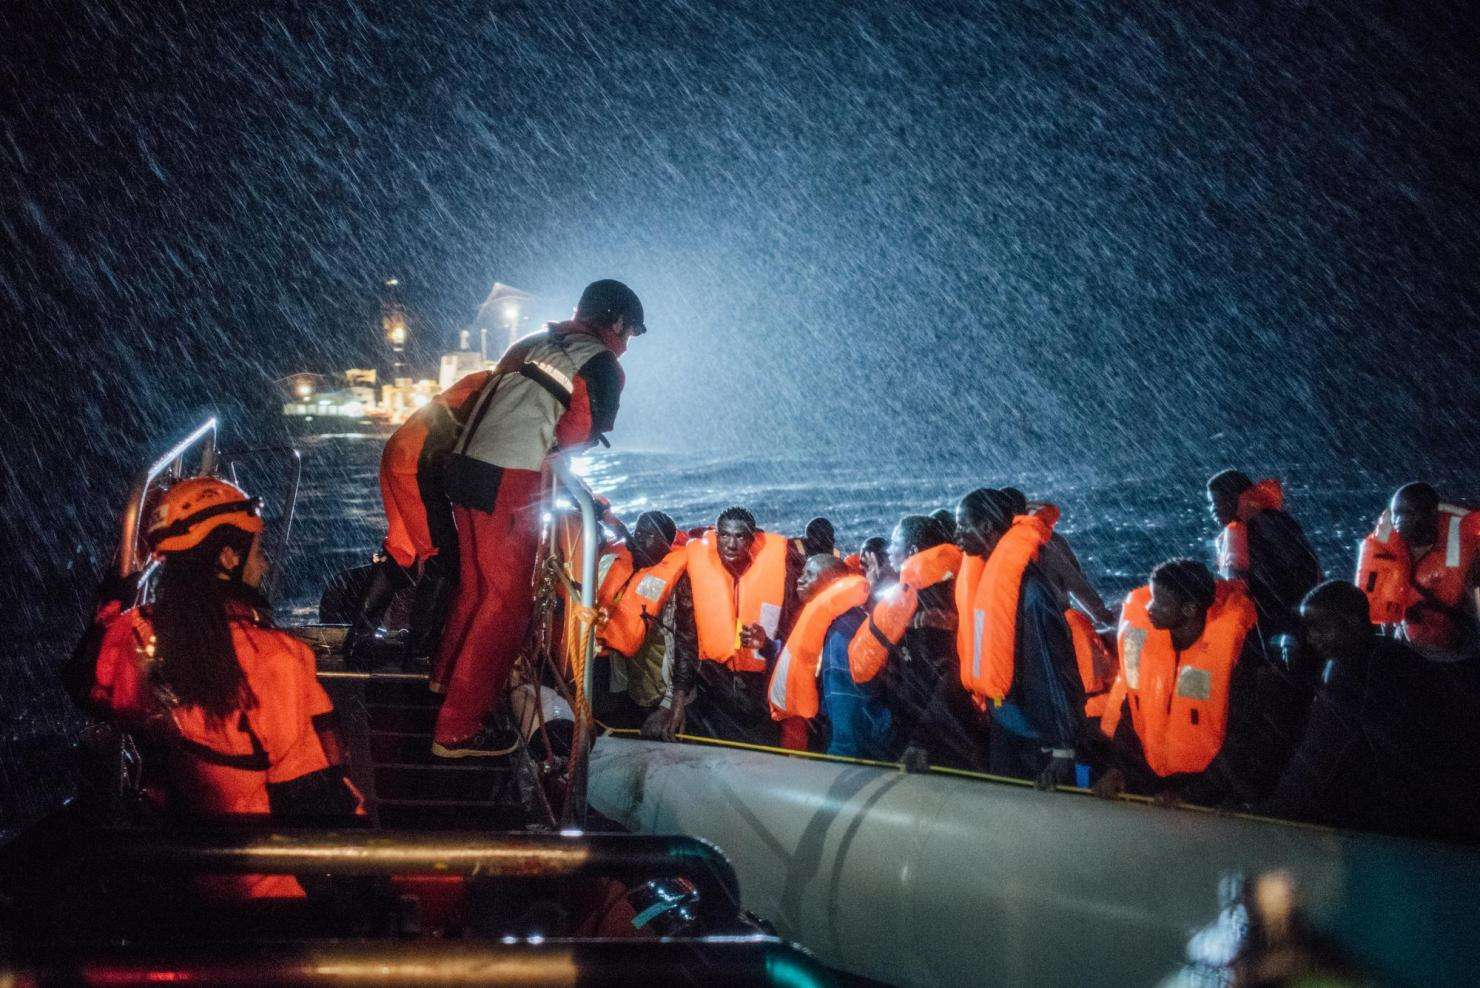 Aquarius Search and Rescue in the Mediterranean: Winter conditions and high seas